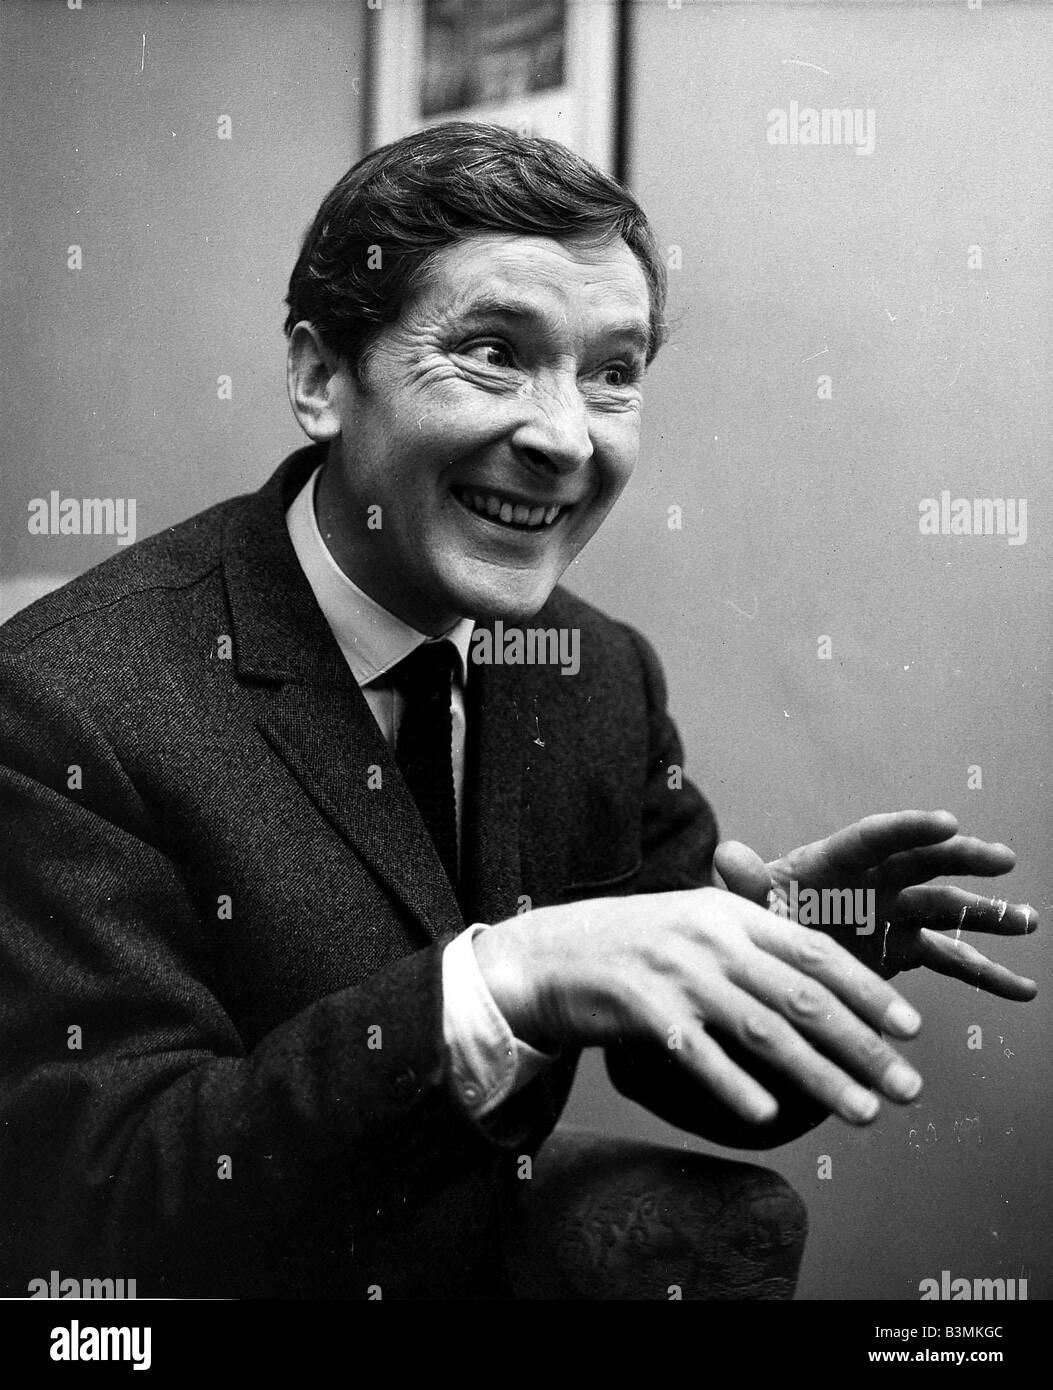 Kenneth Williams High Resolution Stock Photography and Images - Alamy